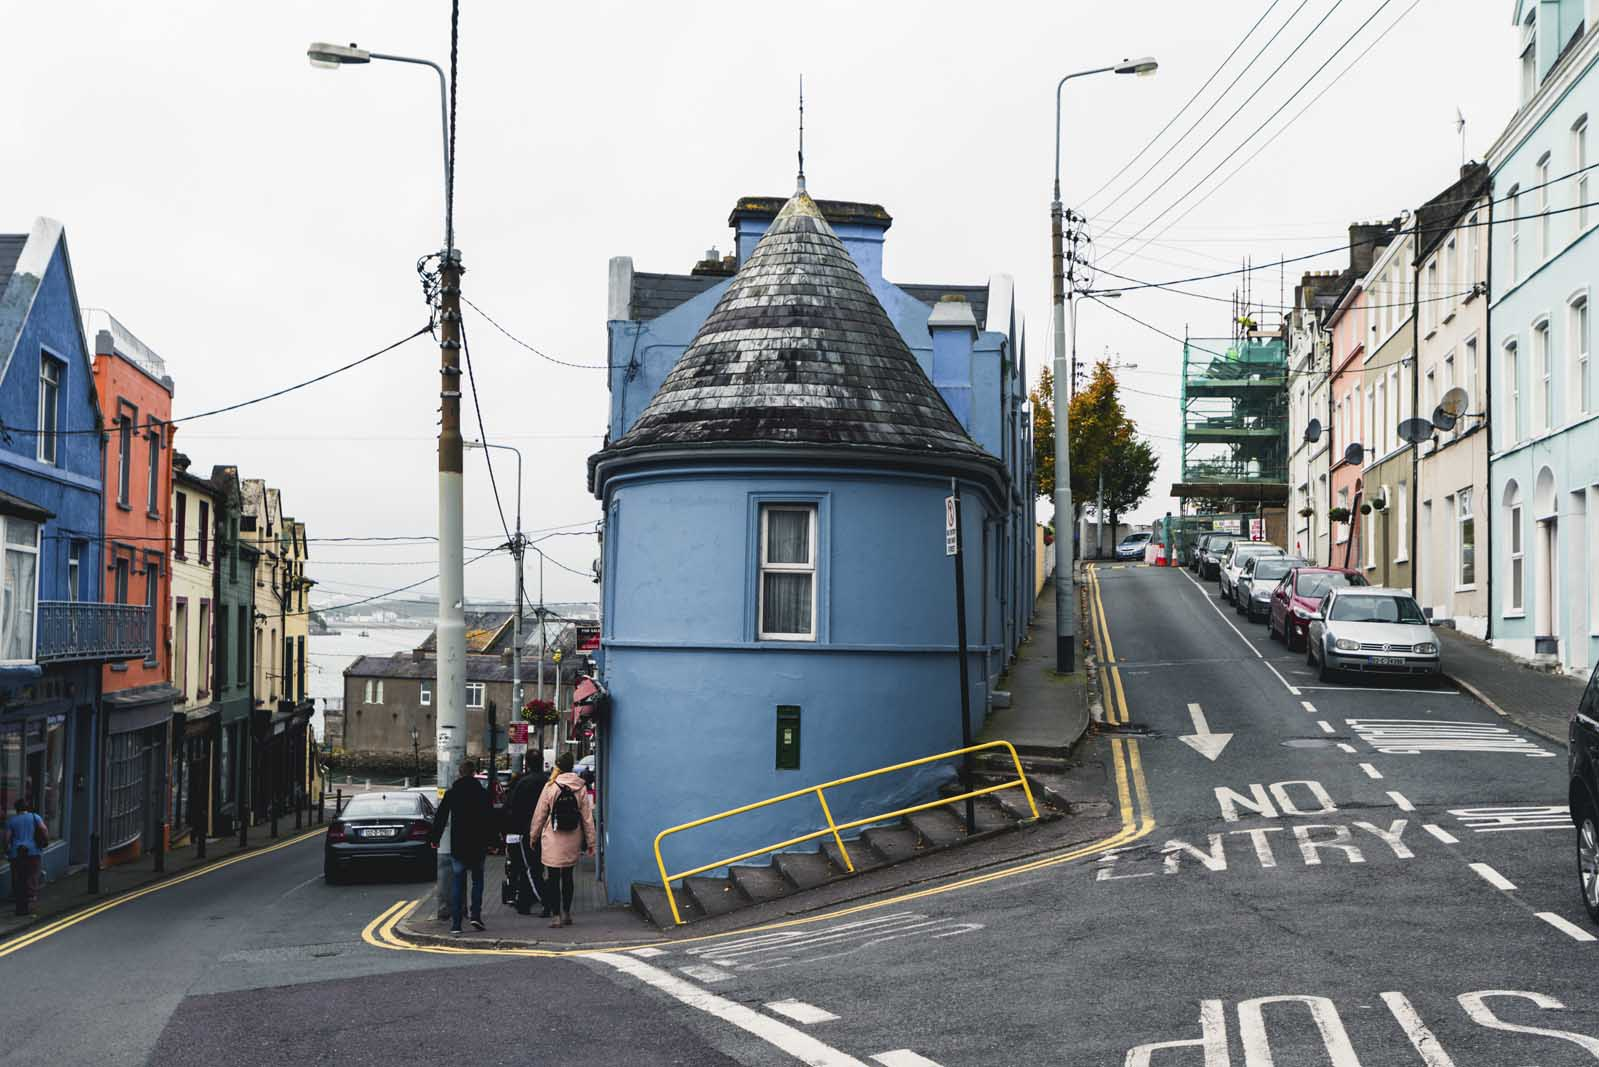 Pretty Blue building in Cobh Ireland